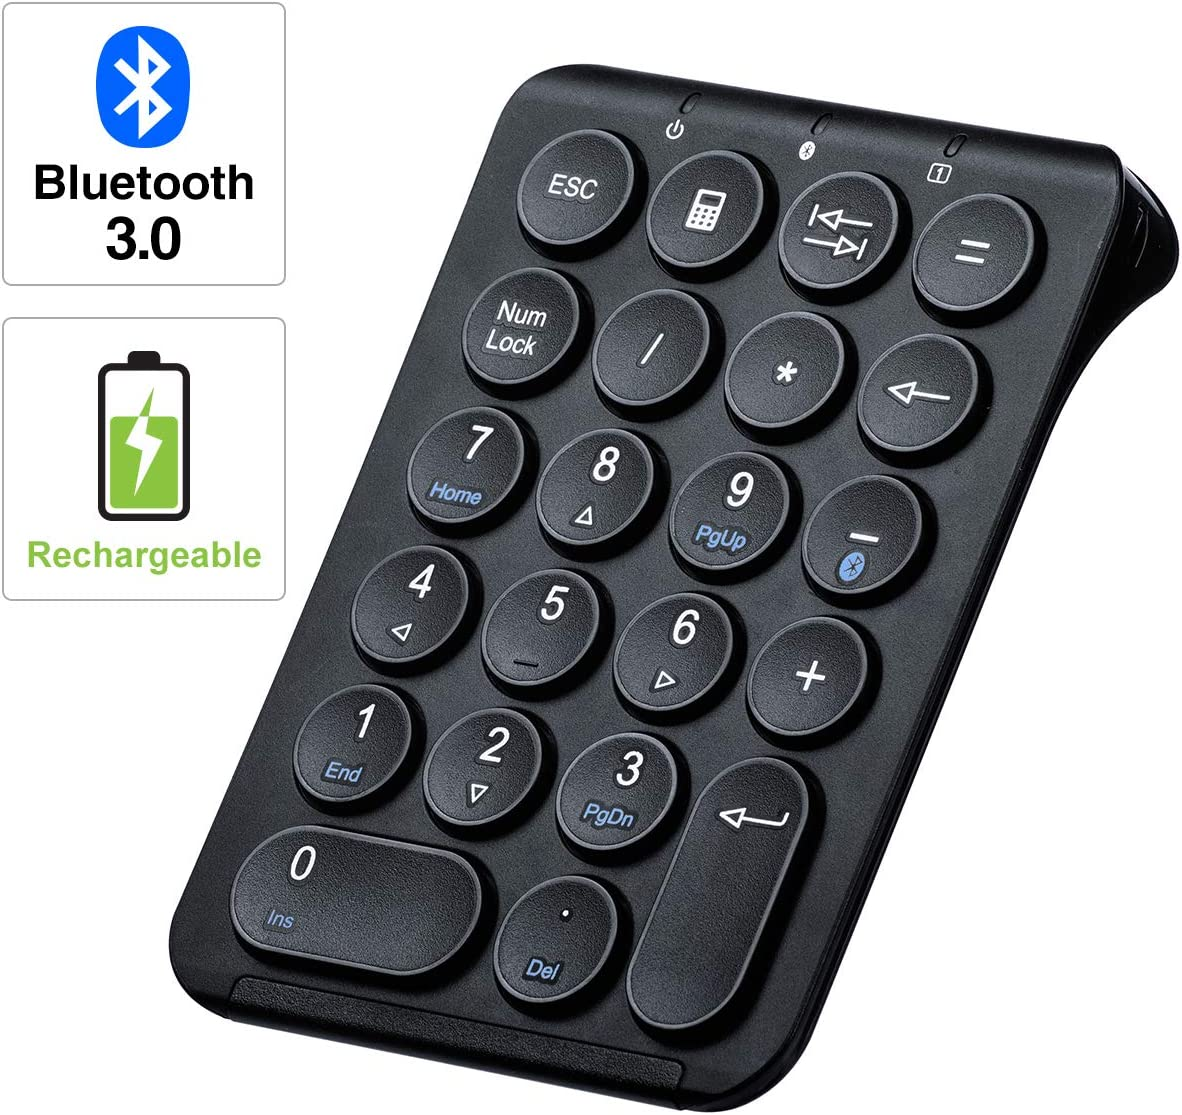 SANWA (Japan Brand) Slim Bluetooth Number Pad, Wireless Numeric Keypad, Portable & Lightweight for Financial Accounting (for MacBook, iPad, iPhone, Surface, PC & Tablet, Android, iOS, Windows)